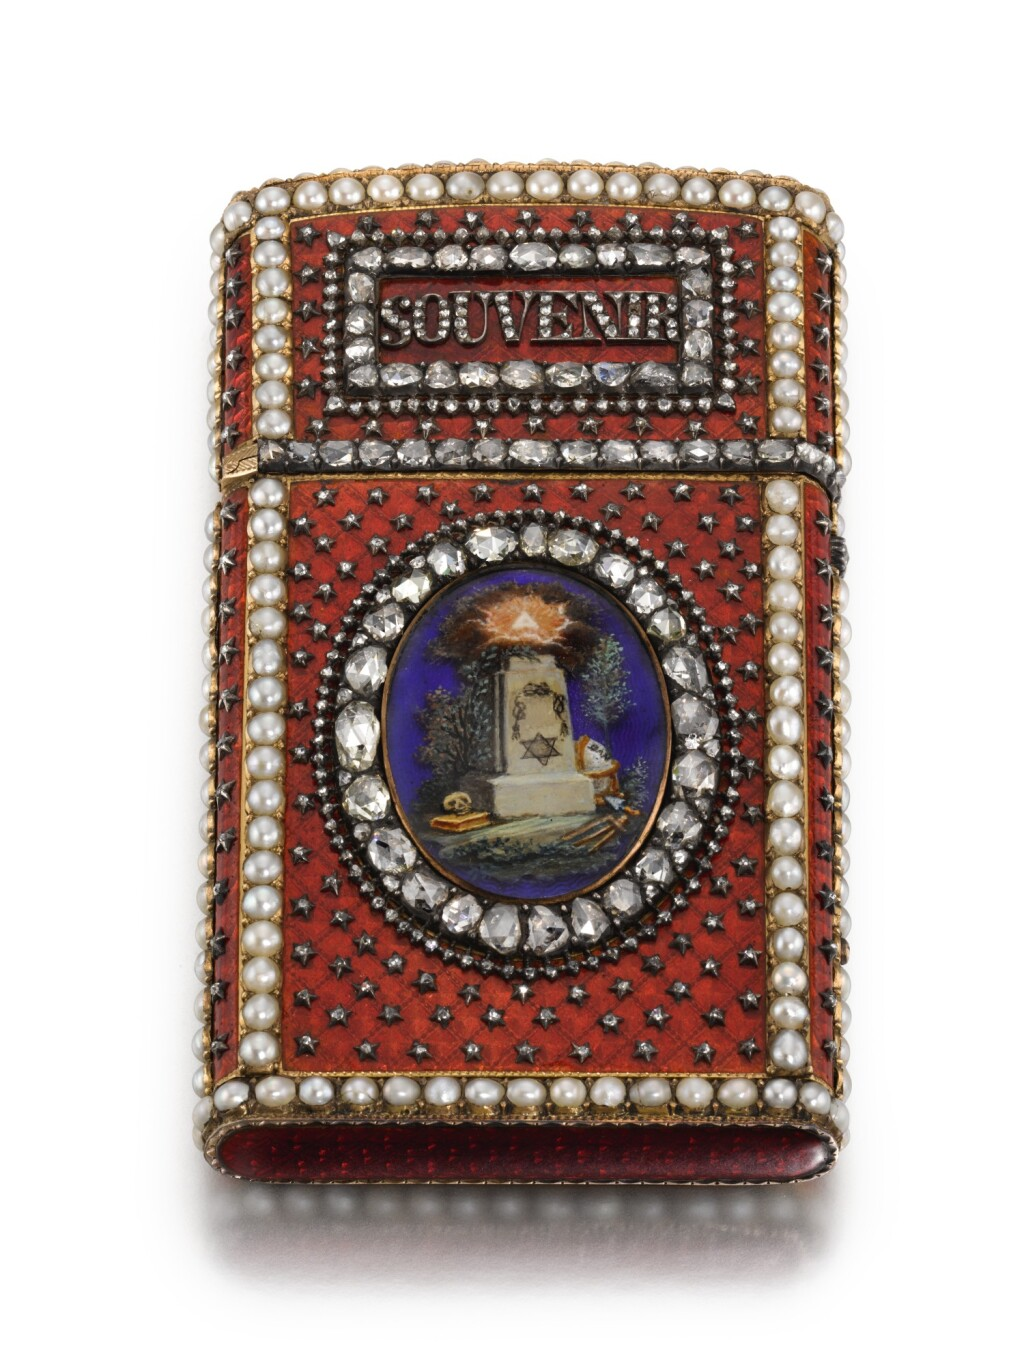 A JEWELLED GOLD AND ENAMEL COMMEMORATIVE SOUVENIR, PROBABLY FRENCH, CIRCA 1890